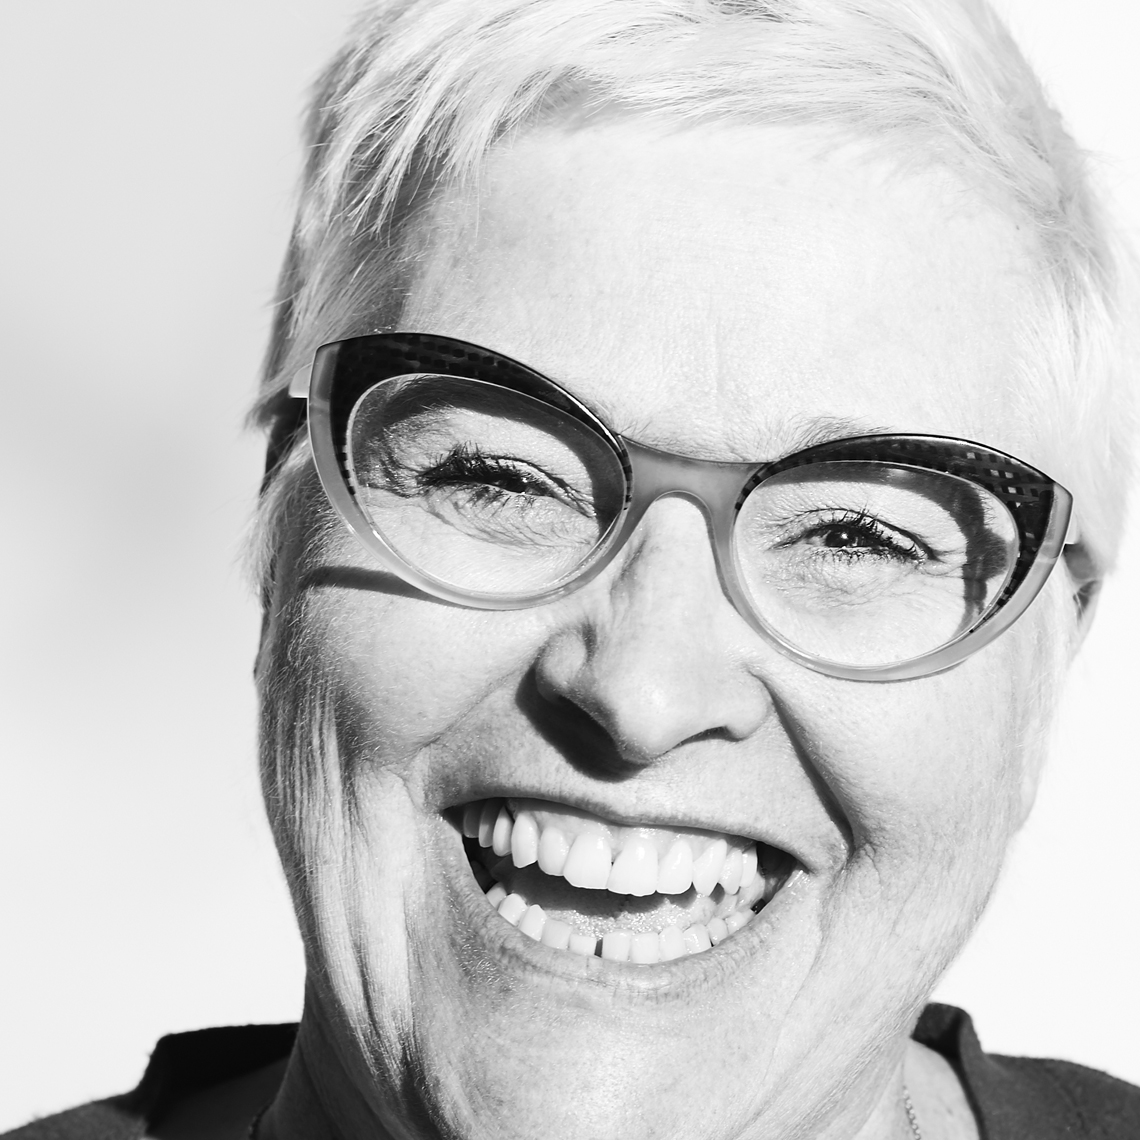 White hair white woman big glasses big laugh Black & White Portrait